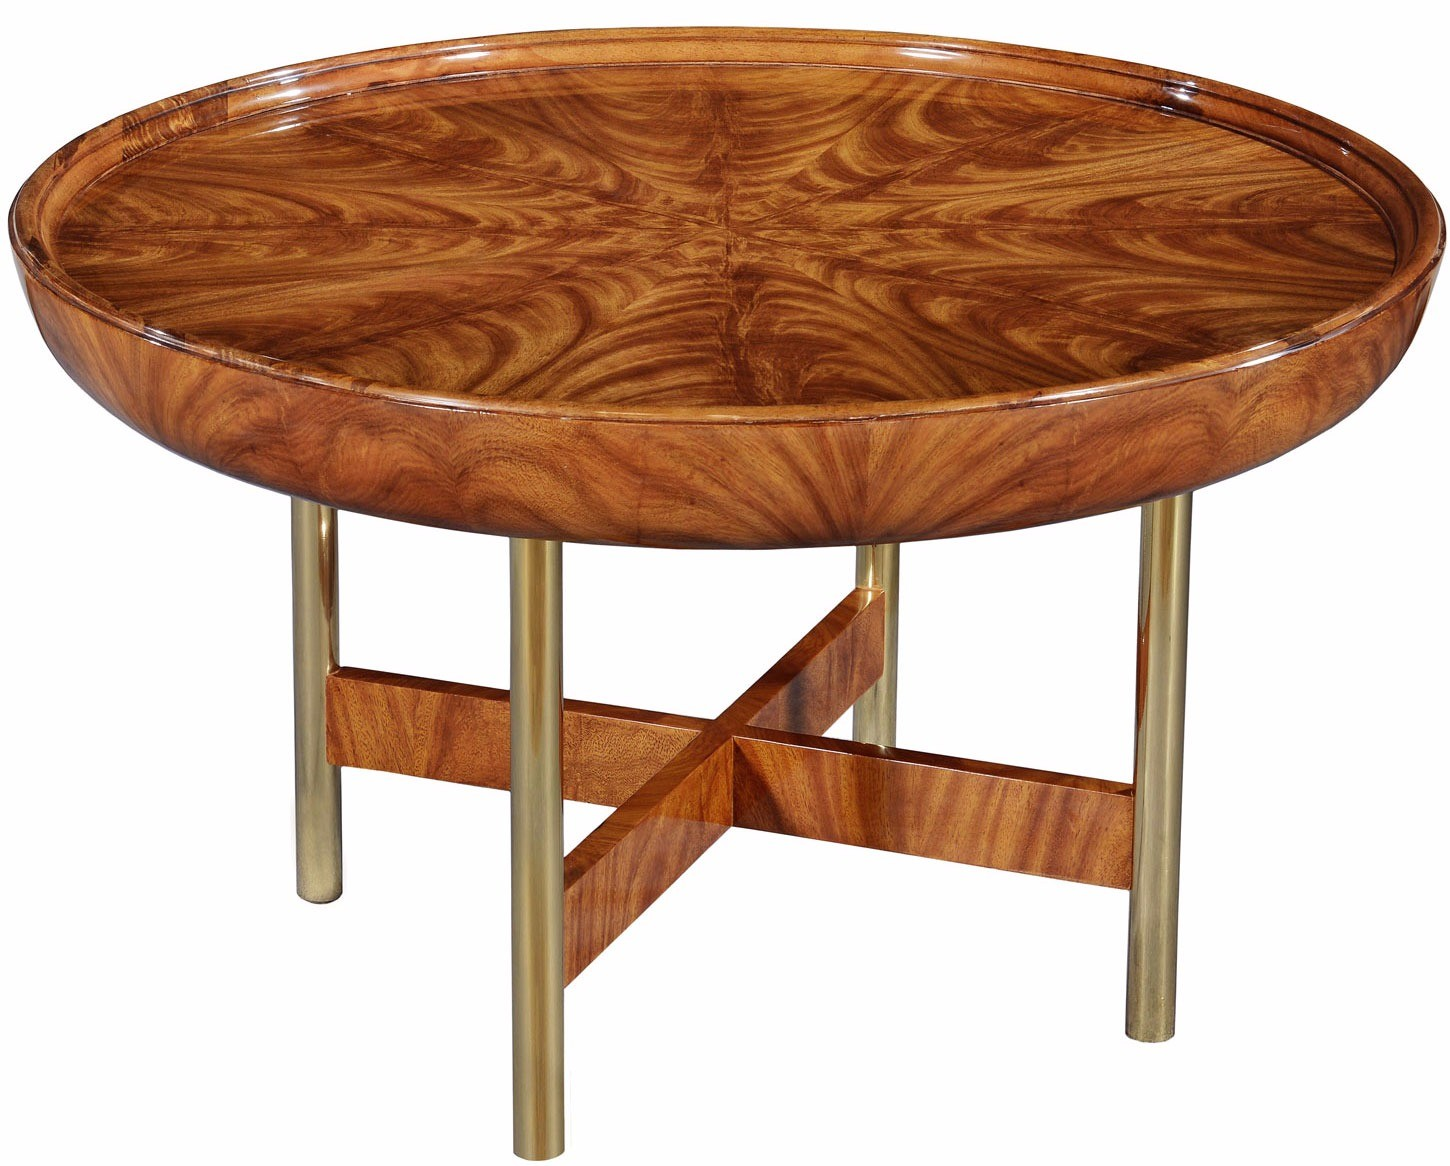 Rex limited edition art deco style round coffee table coffee tables from brights of nettlebed Coffee tables uk